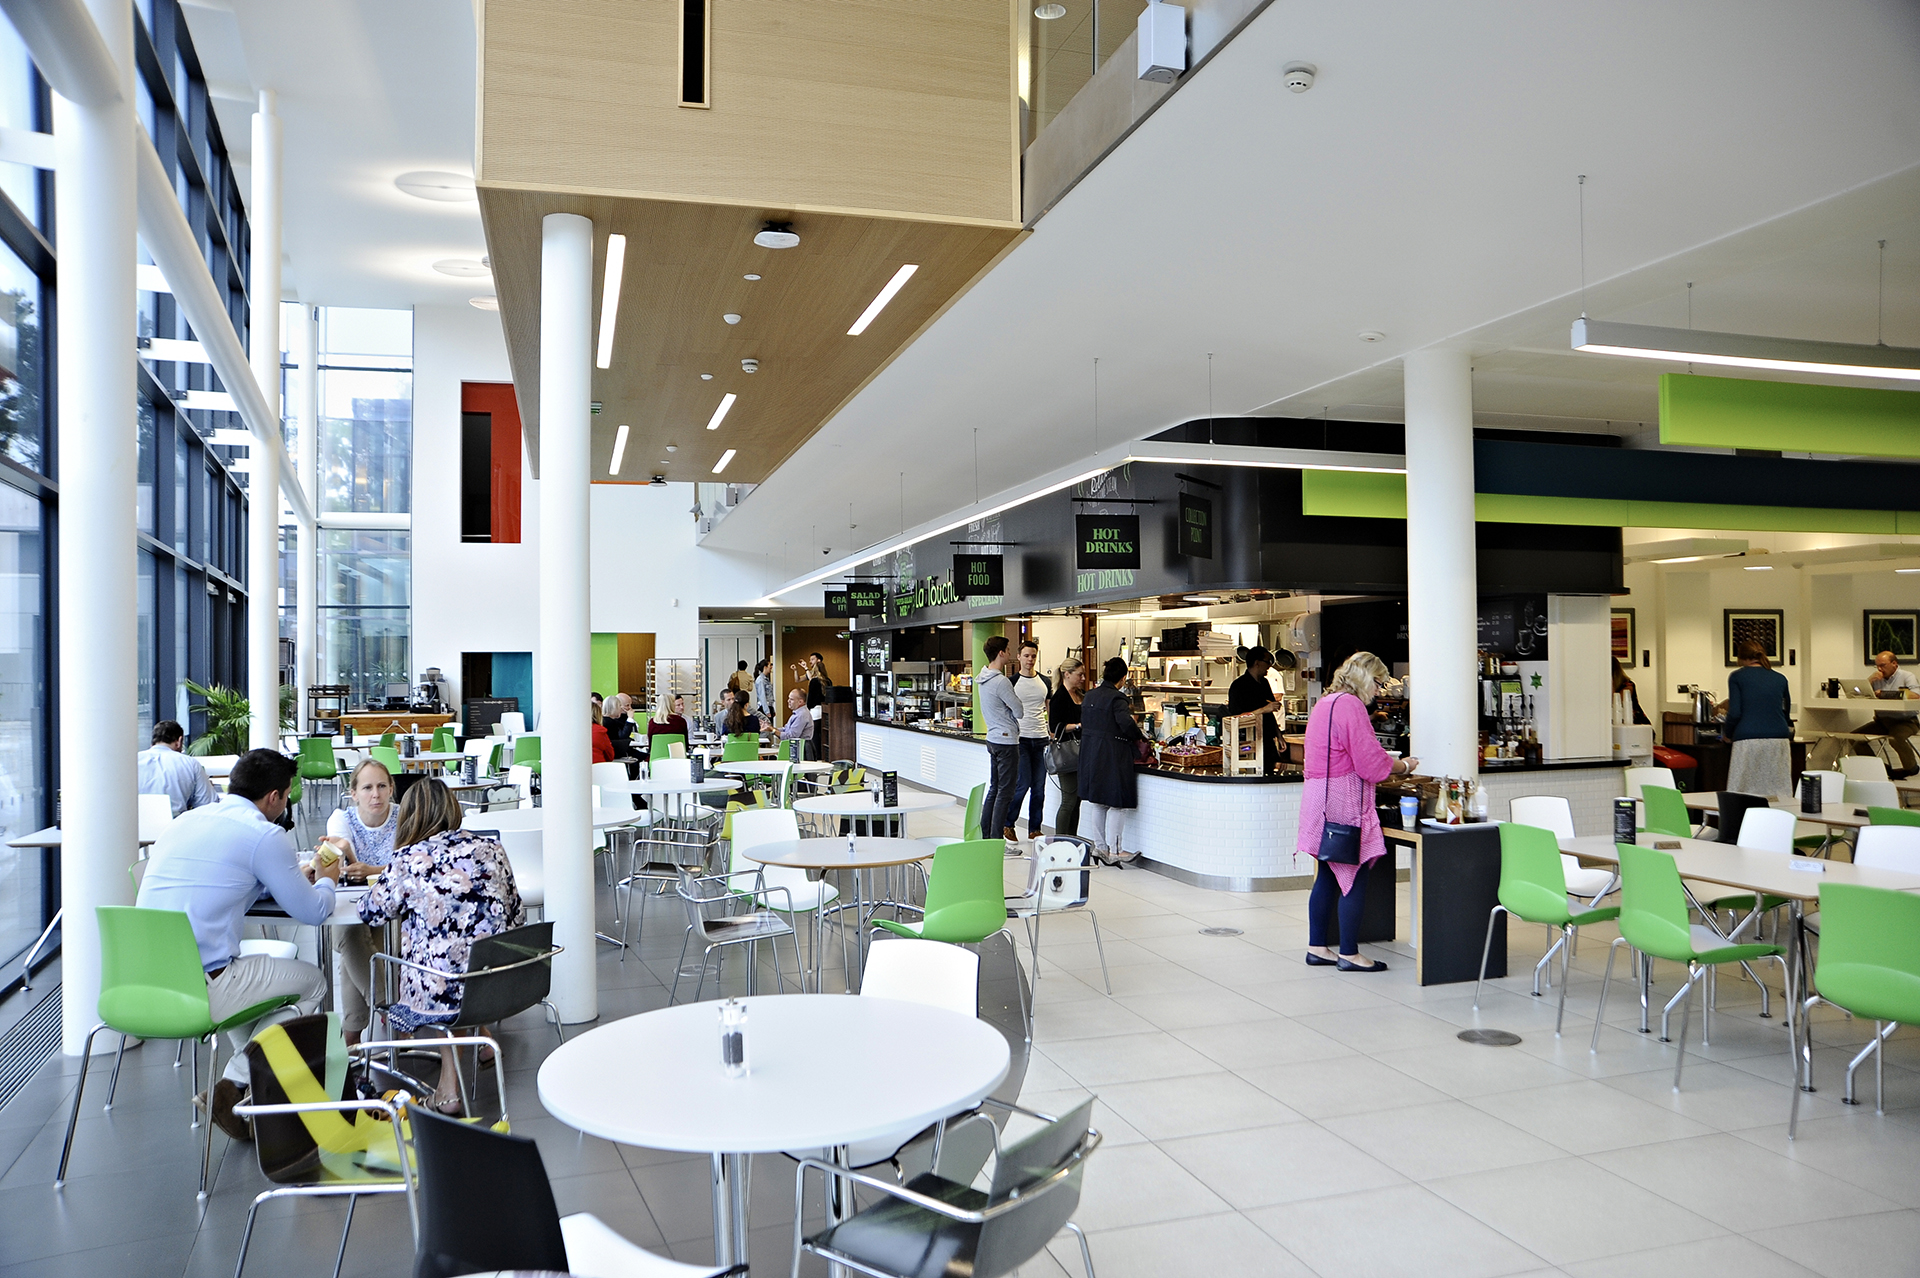 Students eating in La Touche cafe at University of Exeter